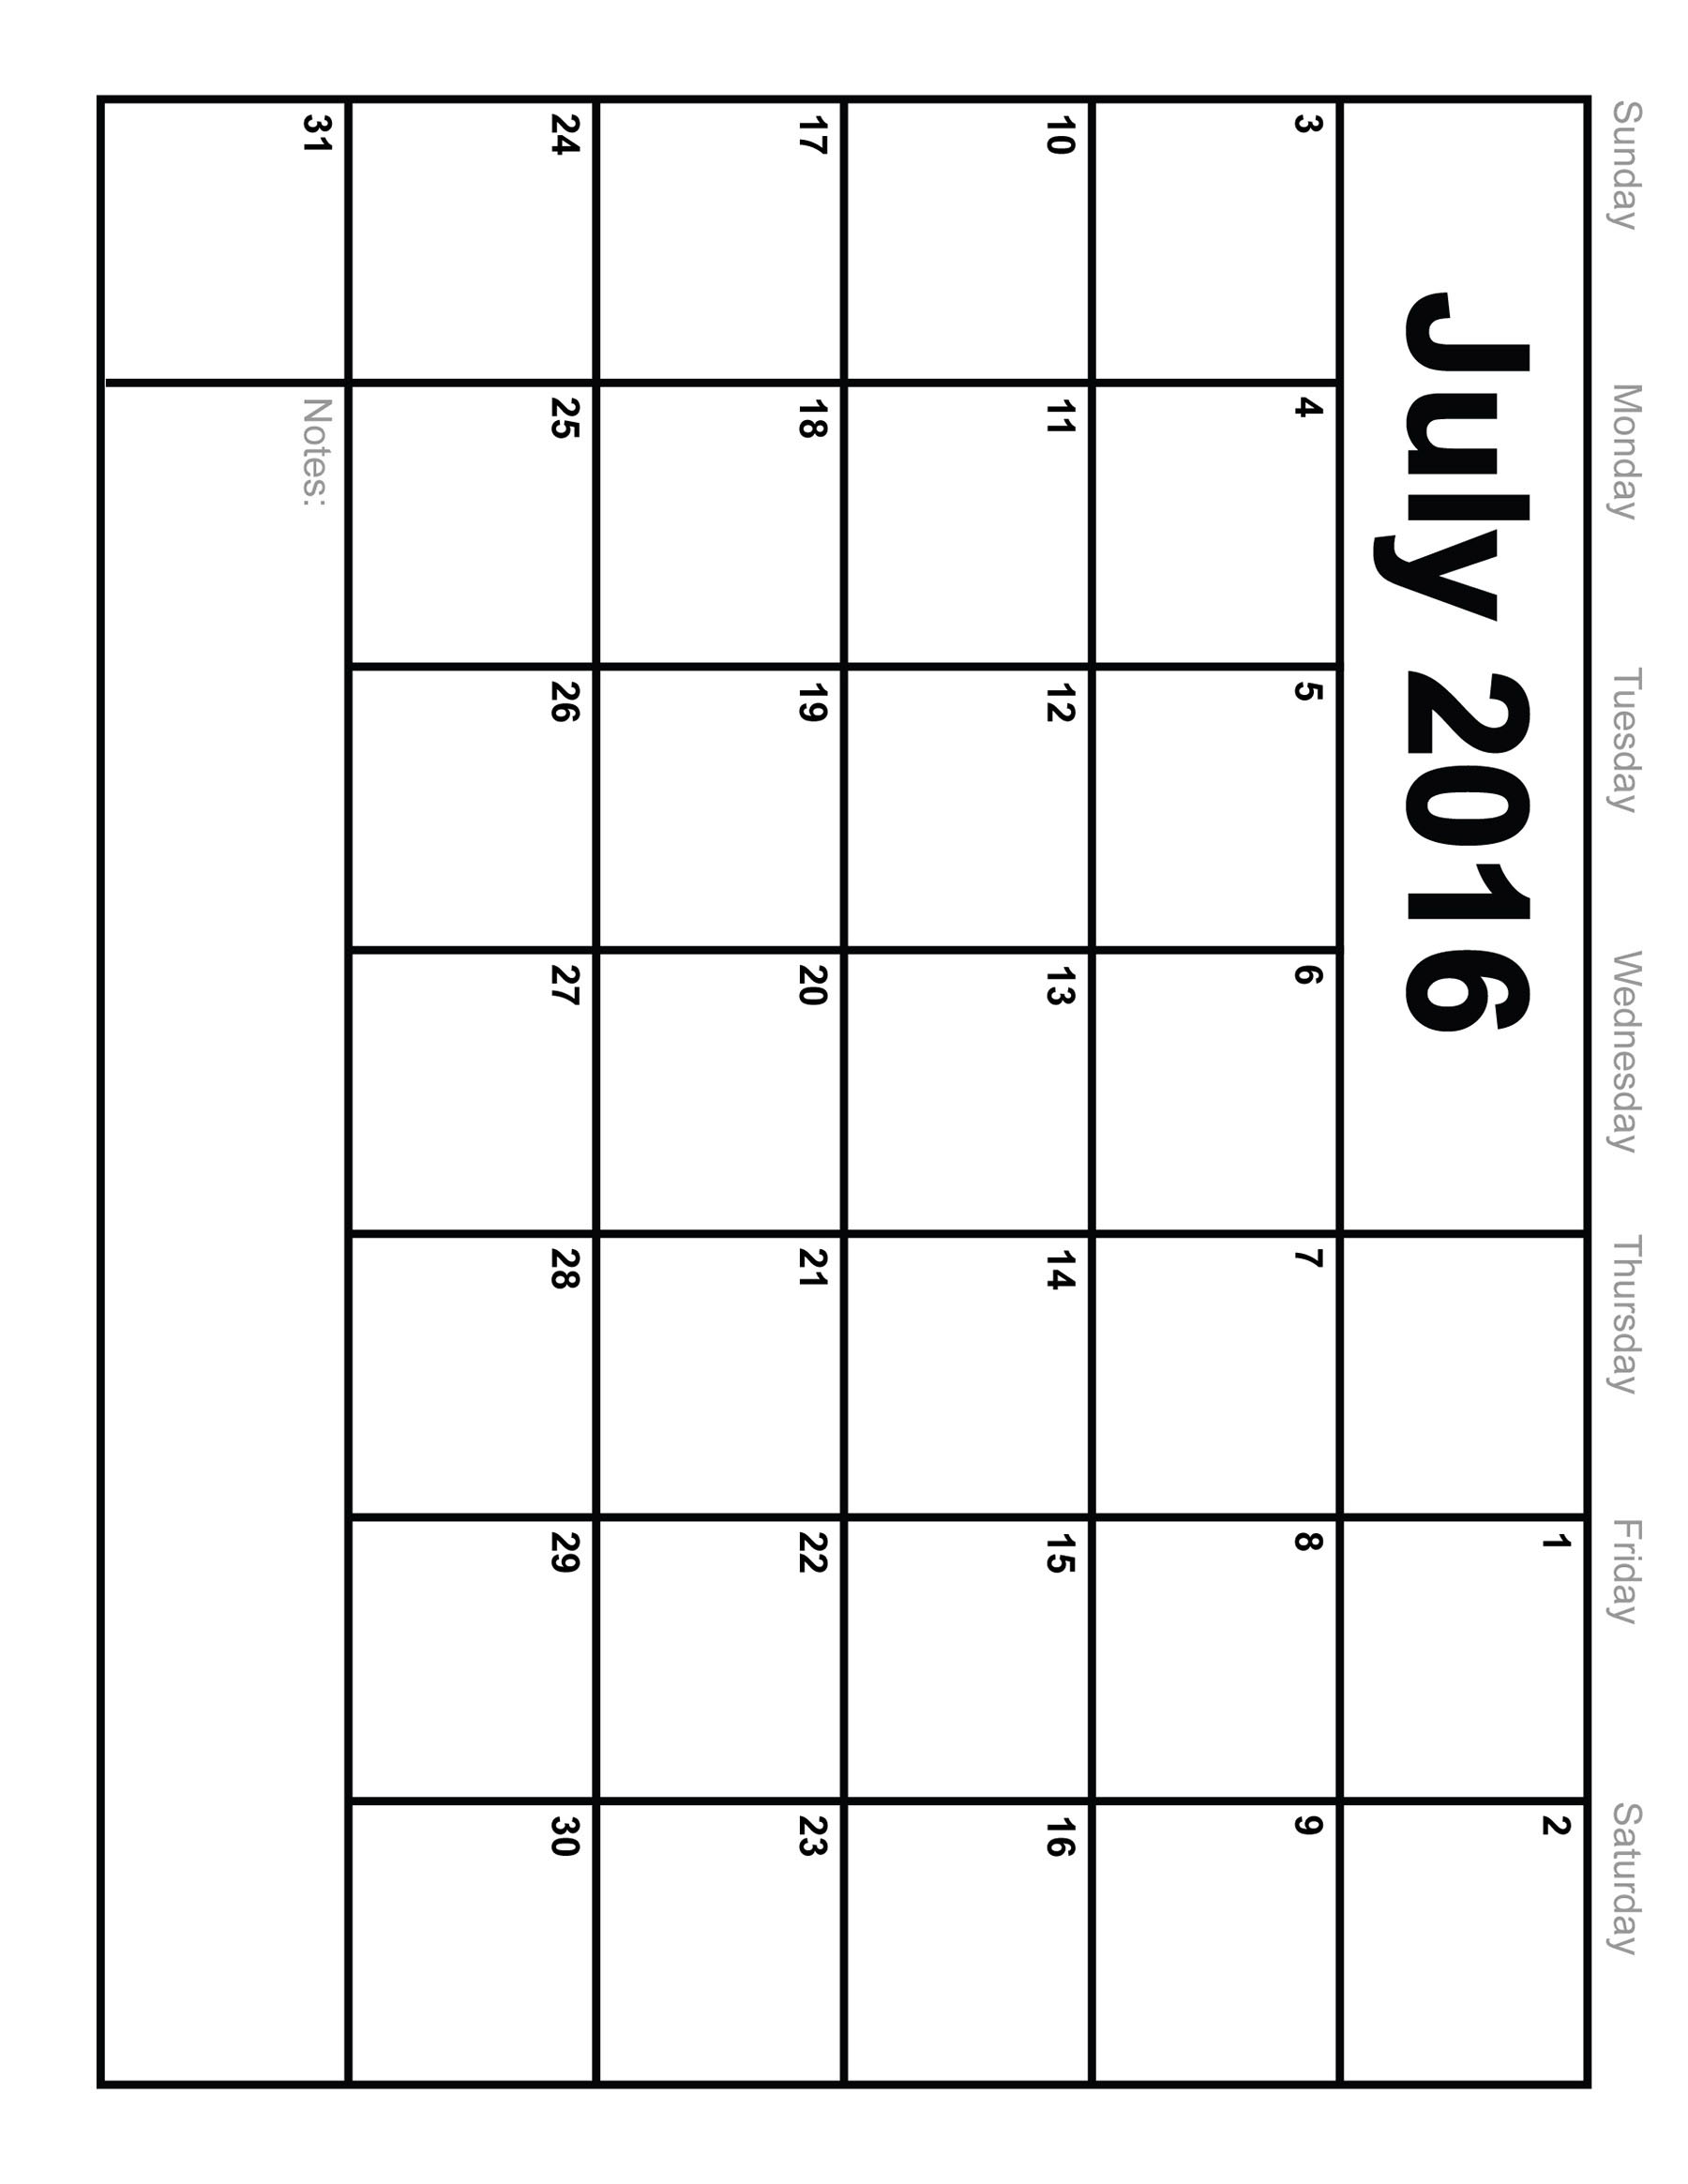 7 Images of Printable Blank Monthly Calendar July 2016